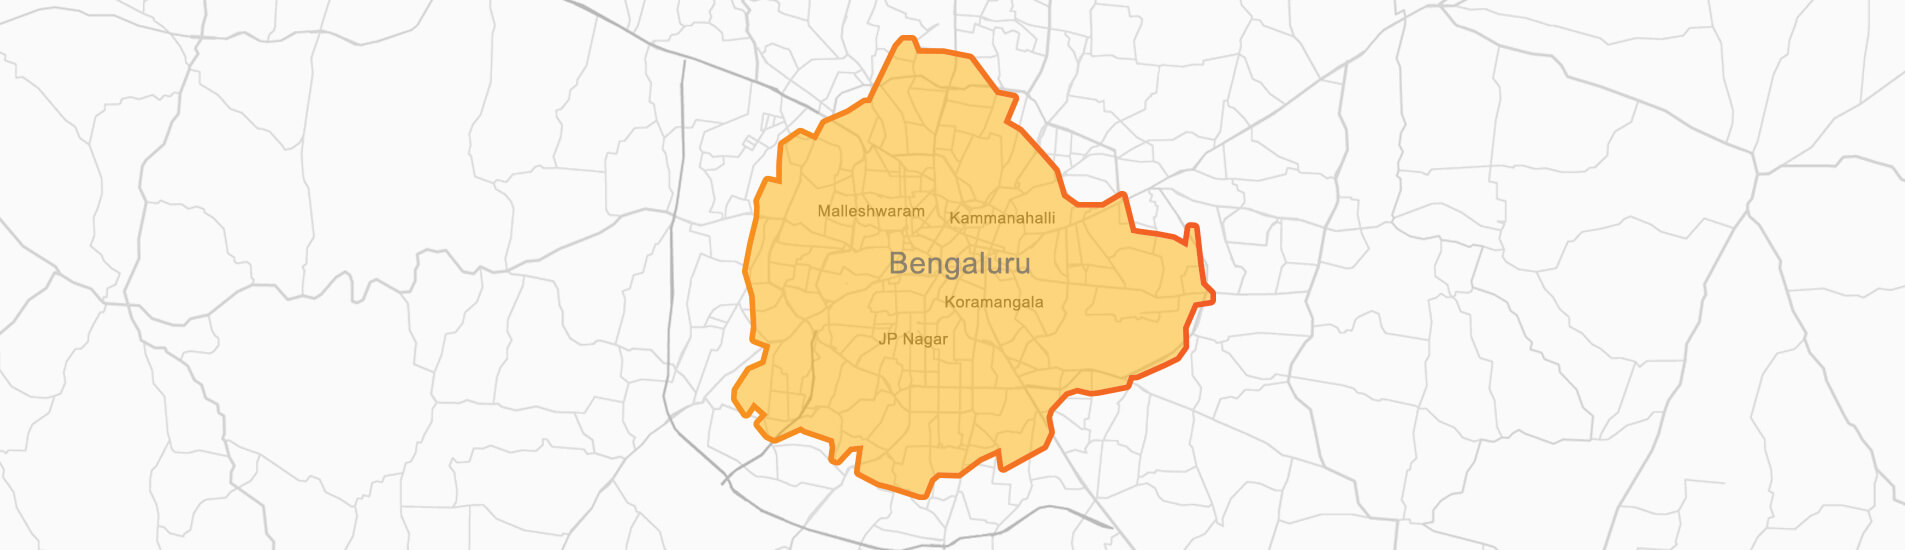 Bangalore Location